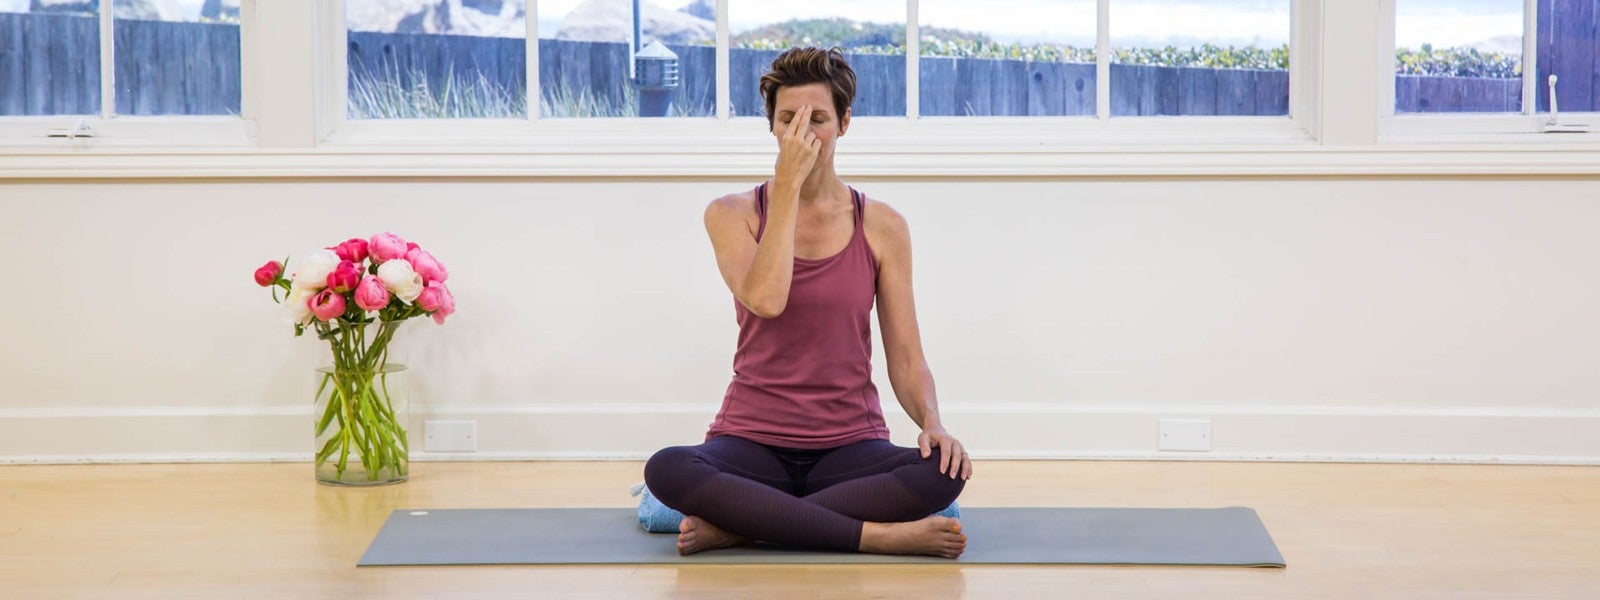 Yoga Breathing 101 Beginner Tips And Practices